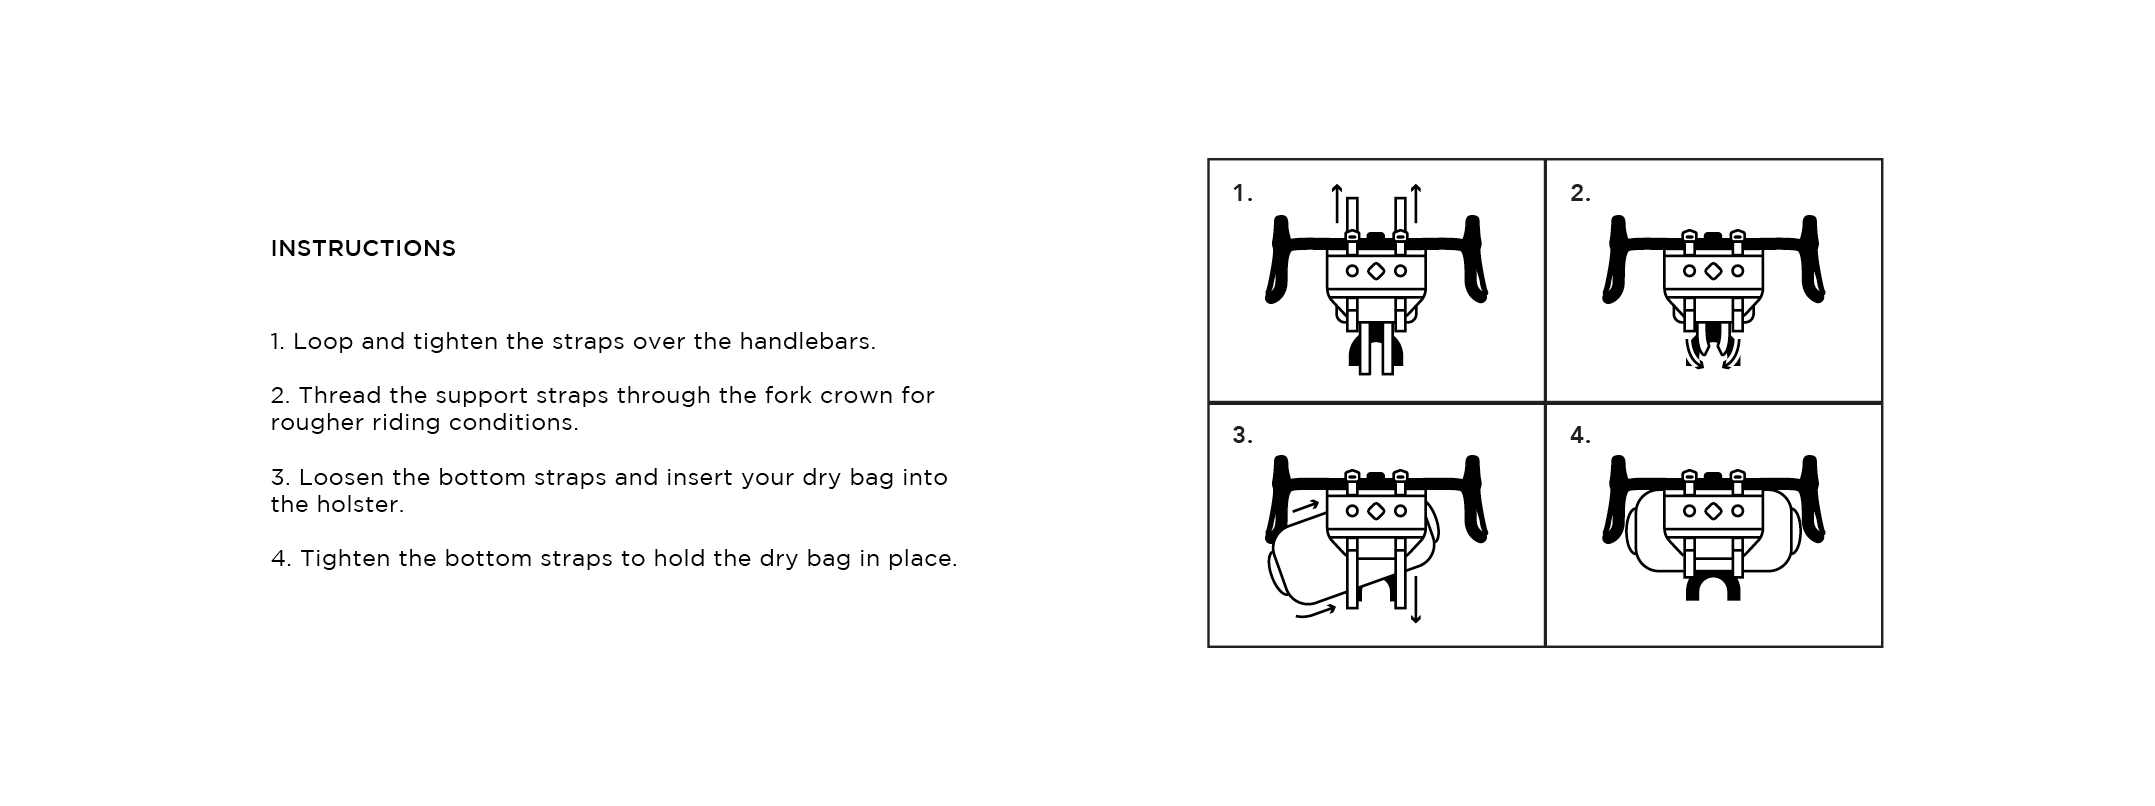 Barbag Instructions